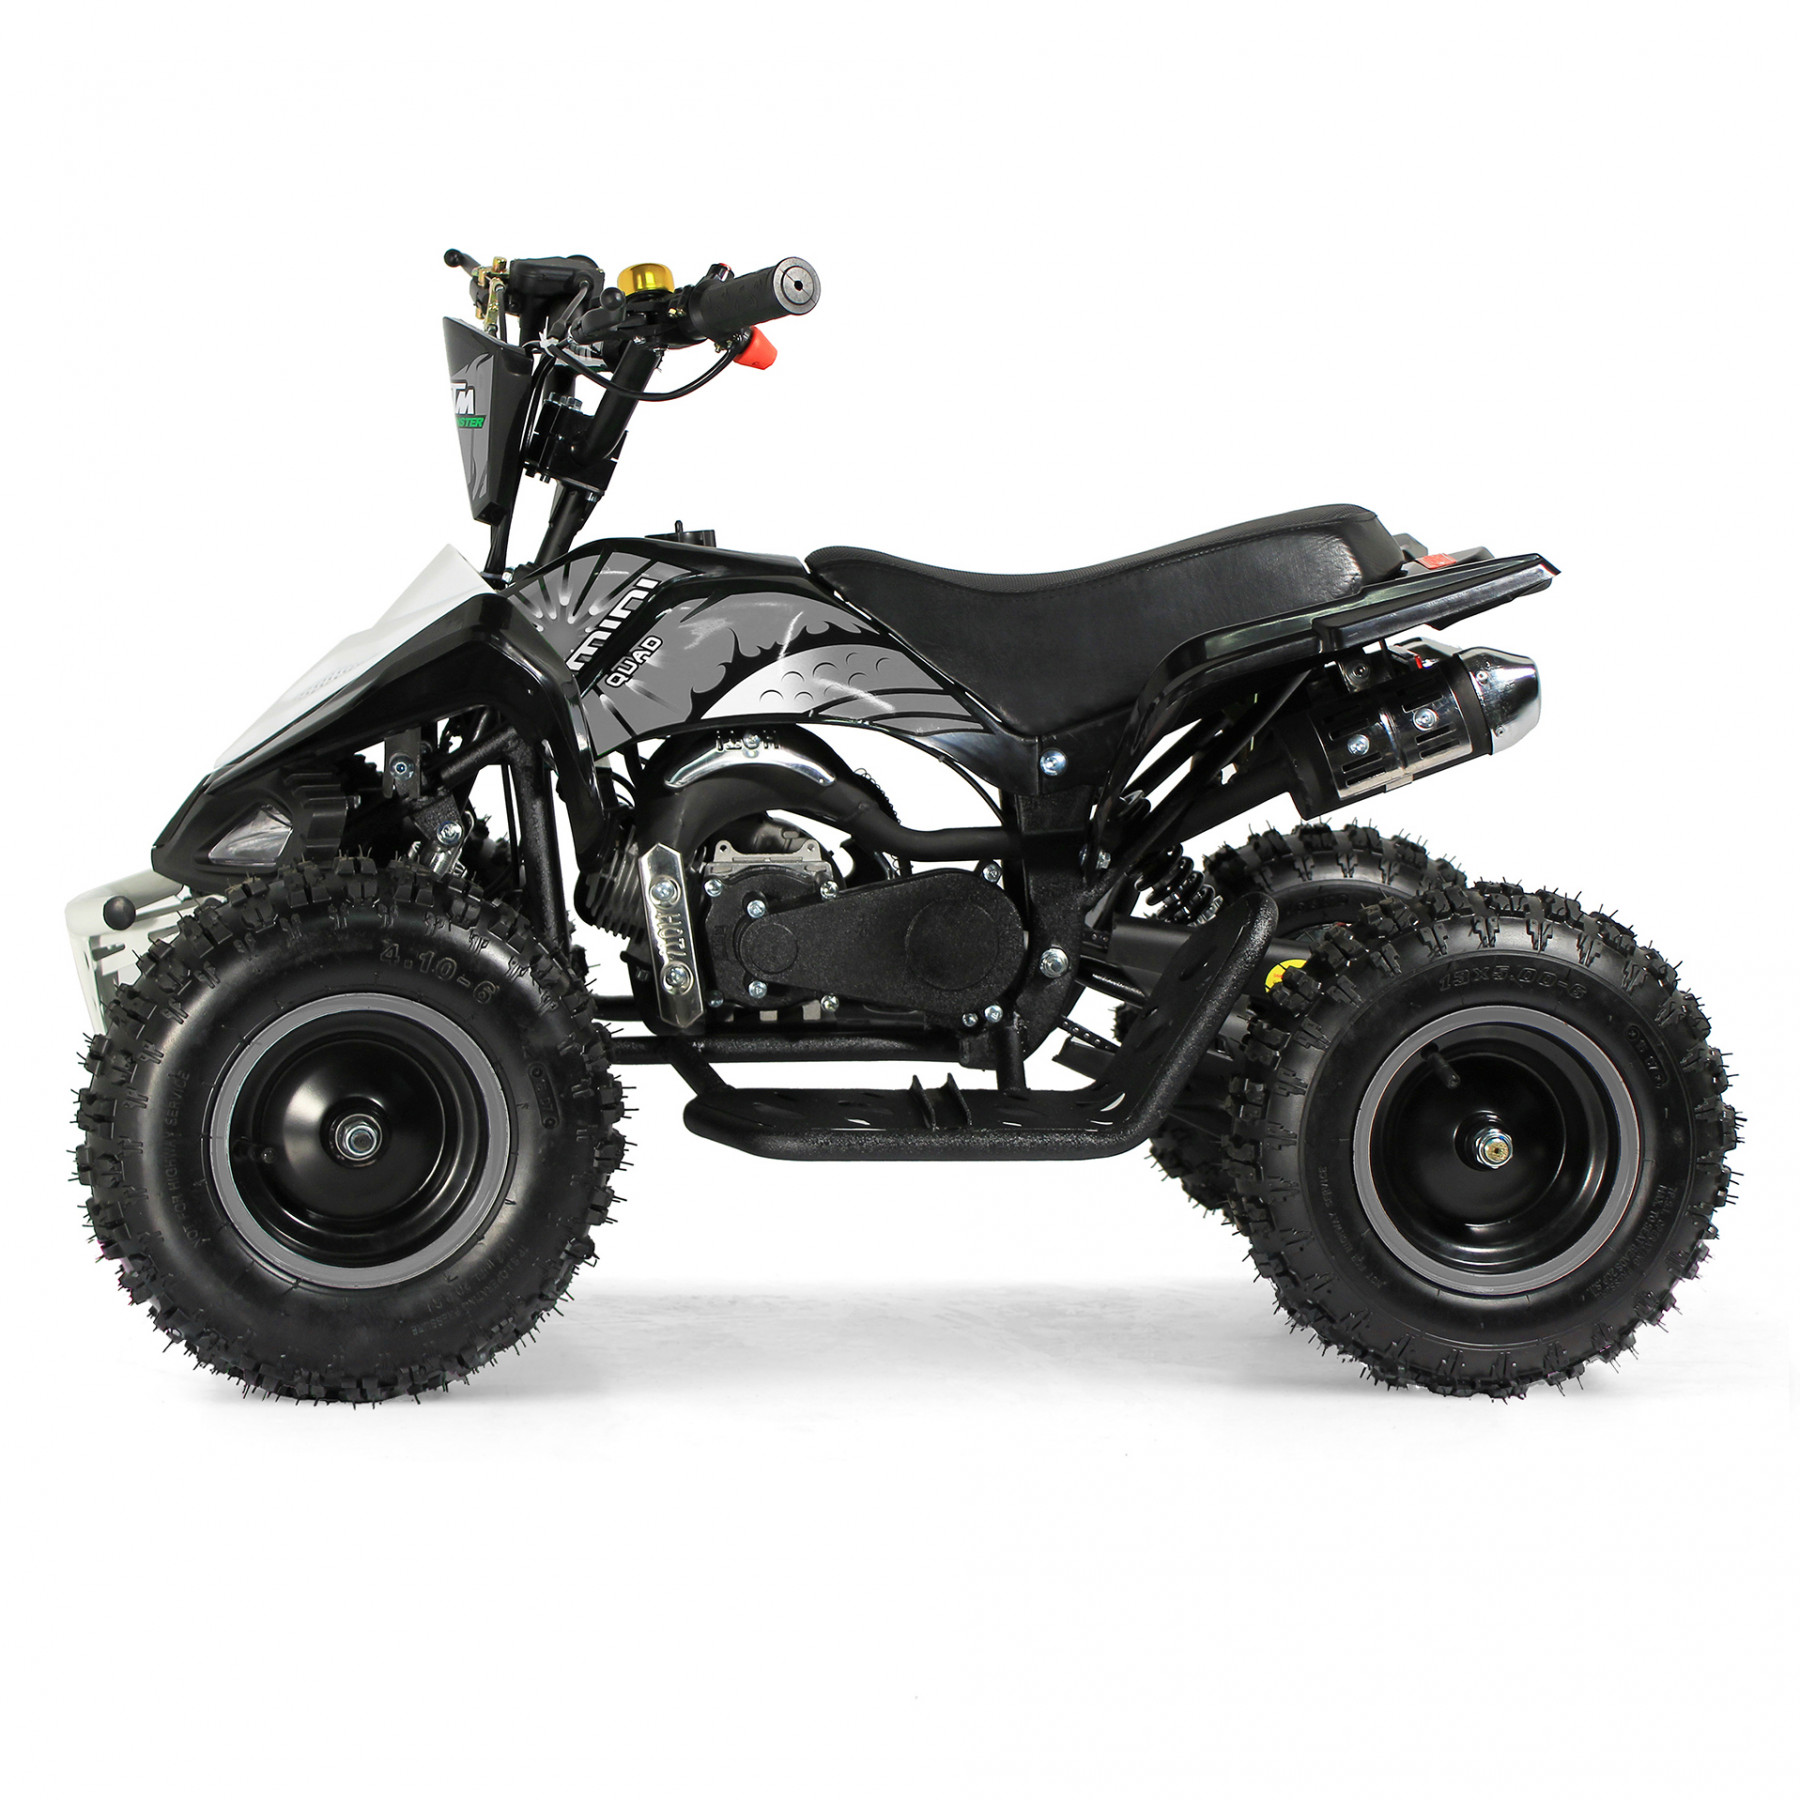 XTM MONSTER 50cc QUAD BIKE BLACK SILVER